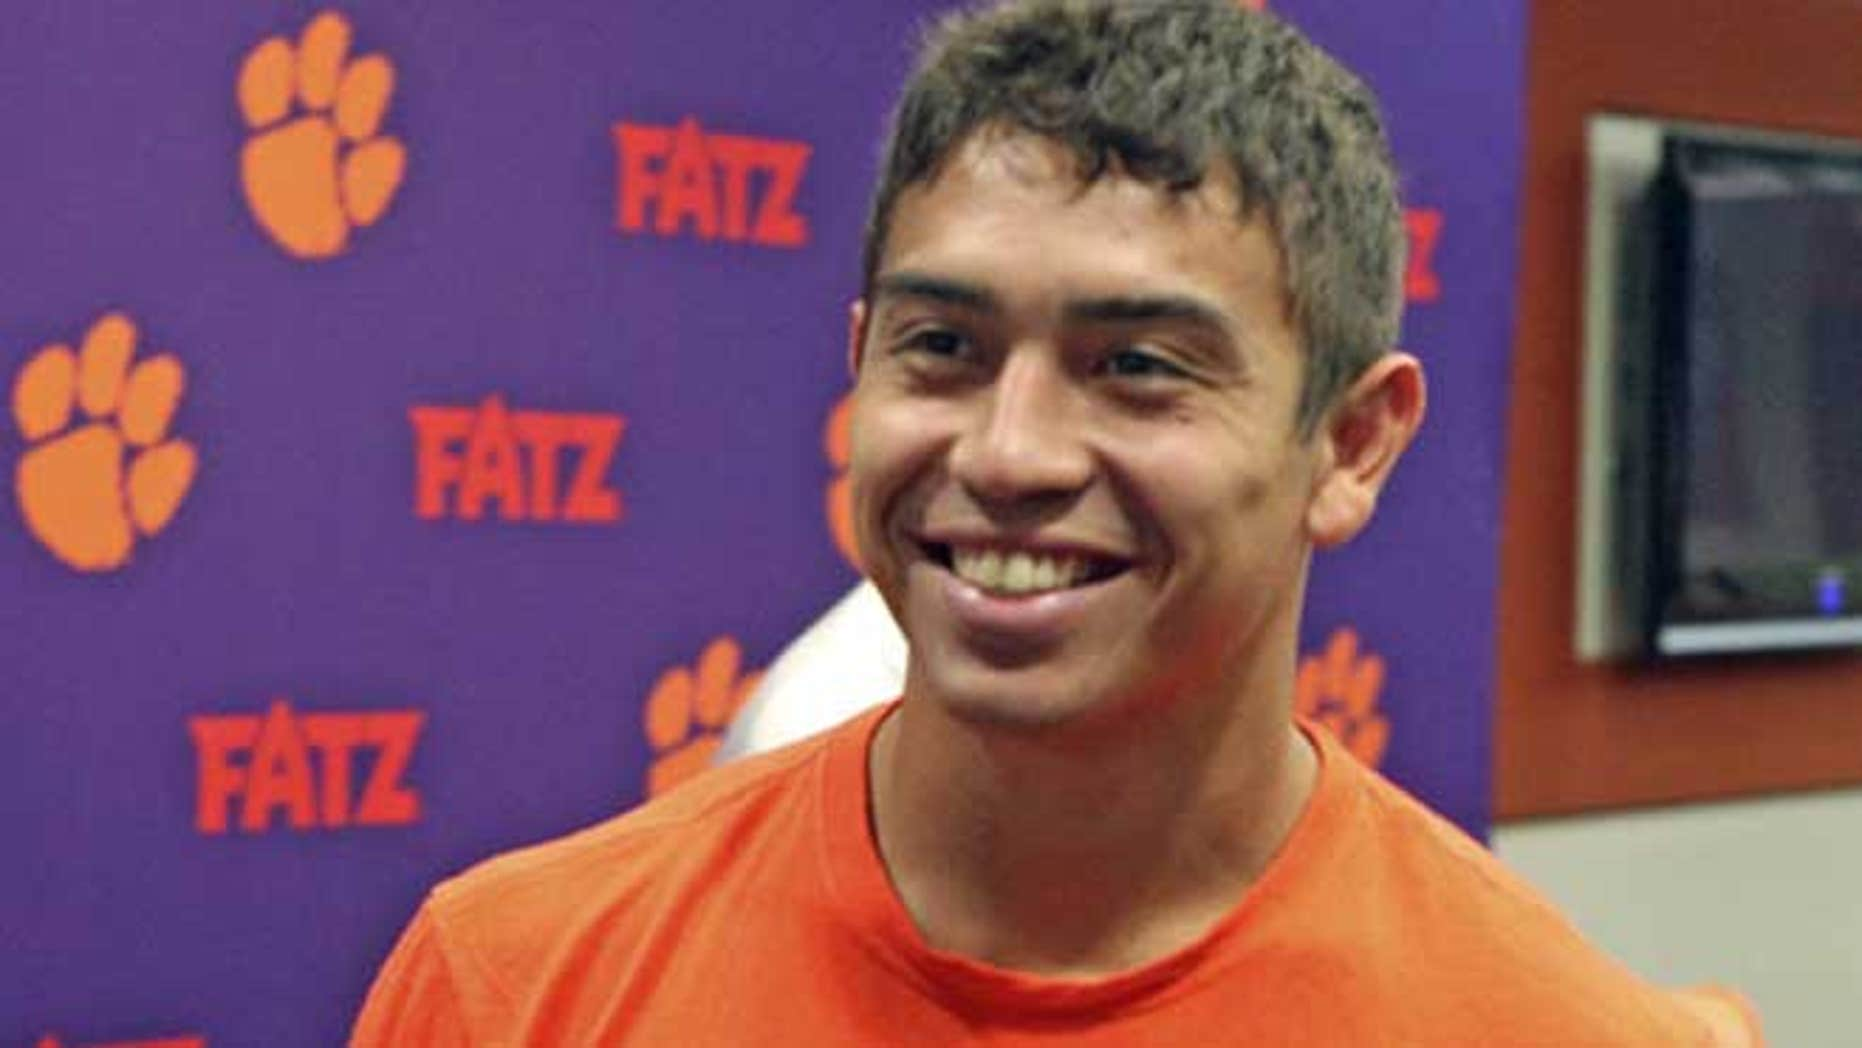 August 1, 2012: Daniel Rodriguez, a 24-year old United States Army veteran, smiles after a press conference at Clemson's Memorial Stadium in Clemson, S.C.